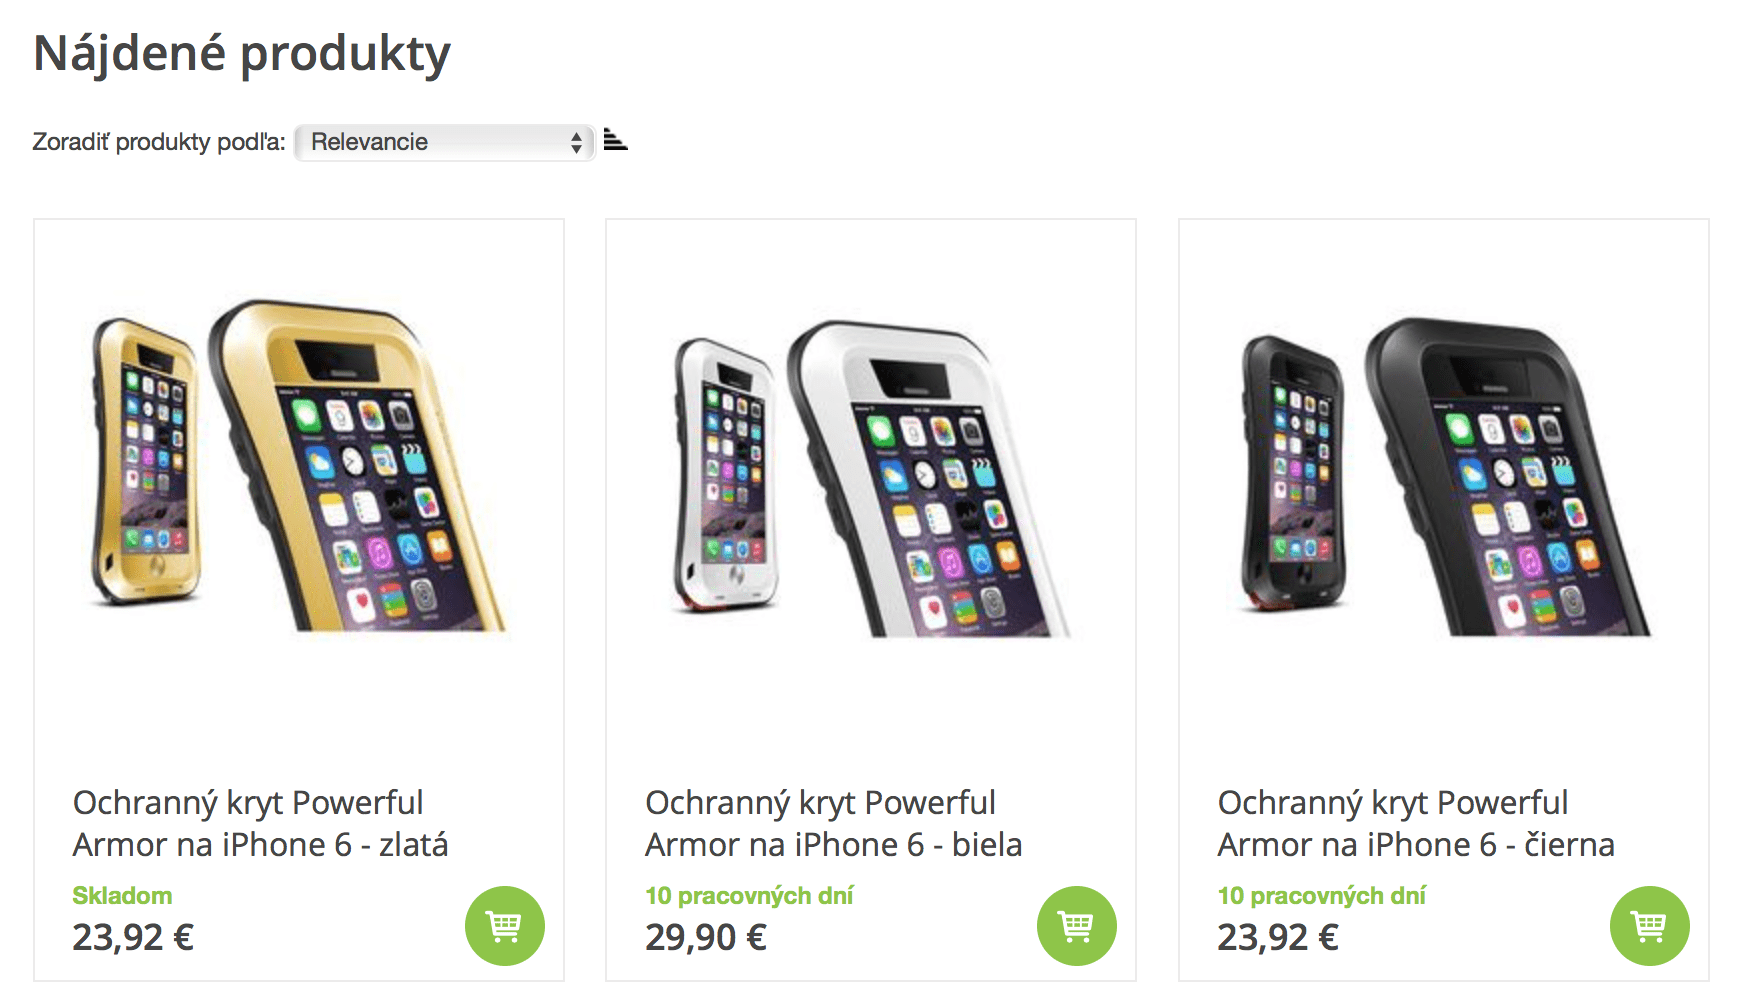 iPhone 6 Safety cases - search results thanks to BlueWinston group campaign in Google search